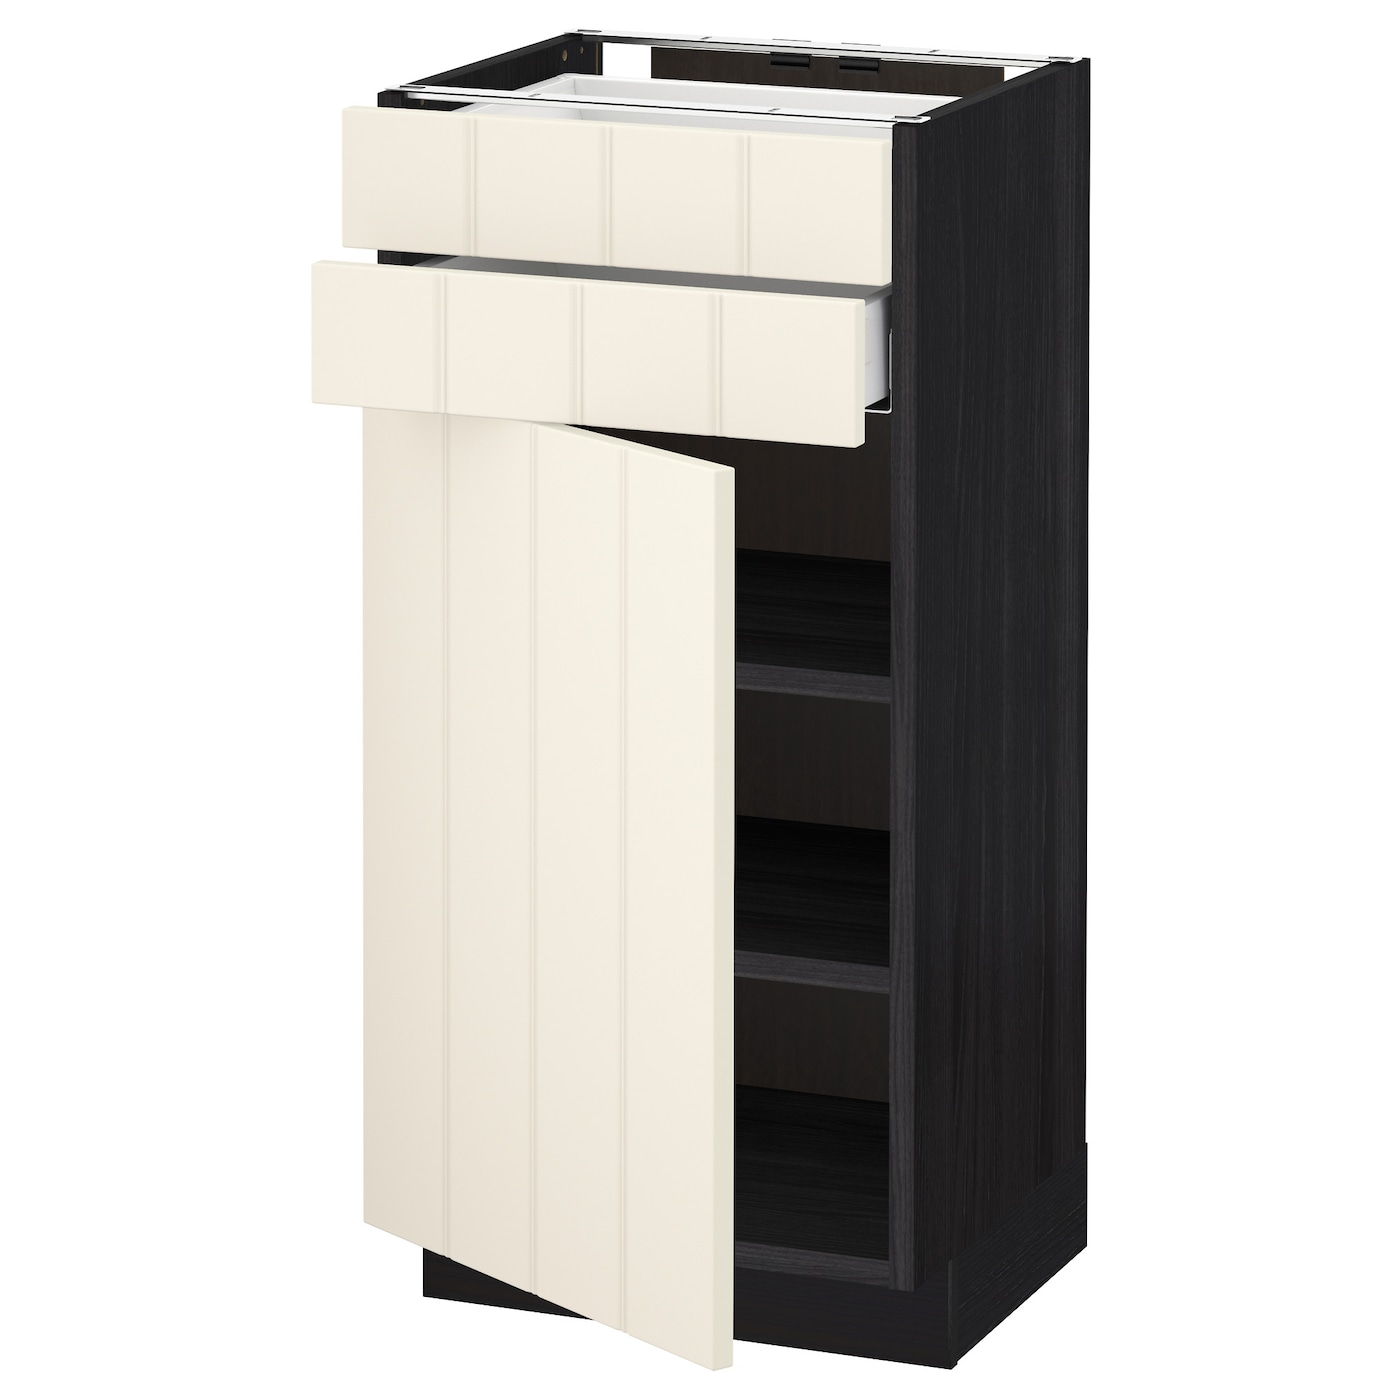 Metod maximera base cabinet w door 2 drawers black hittarp for Black kitchen base cabinets